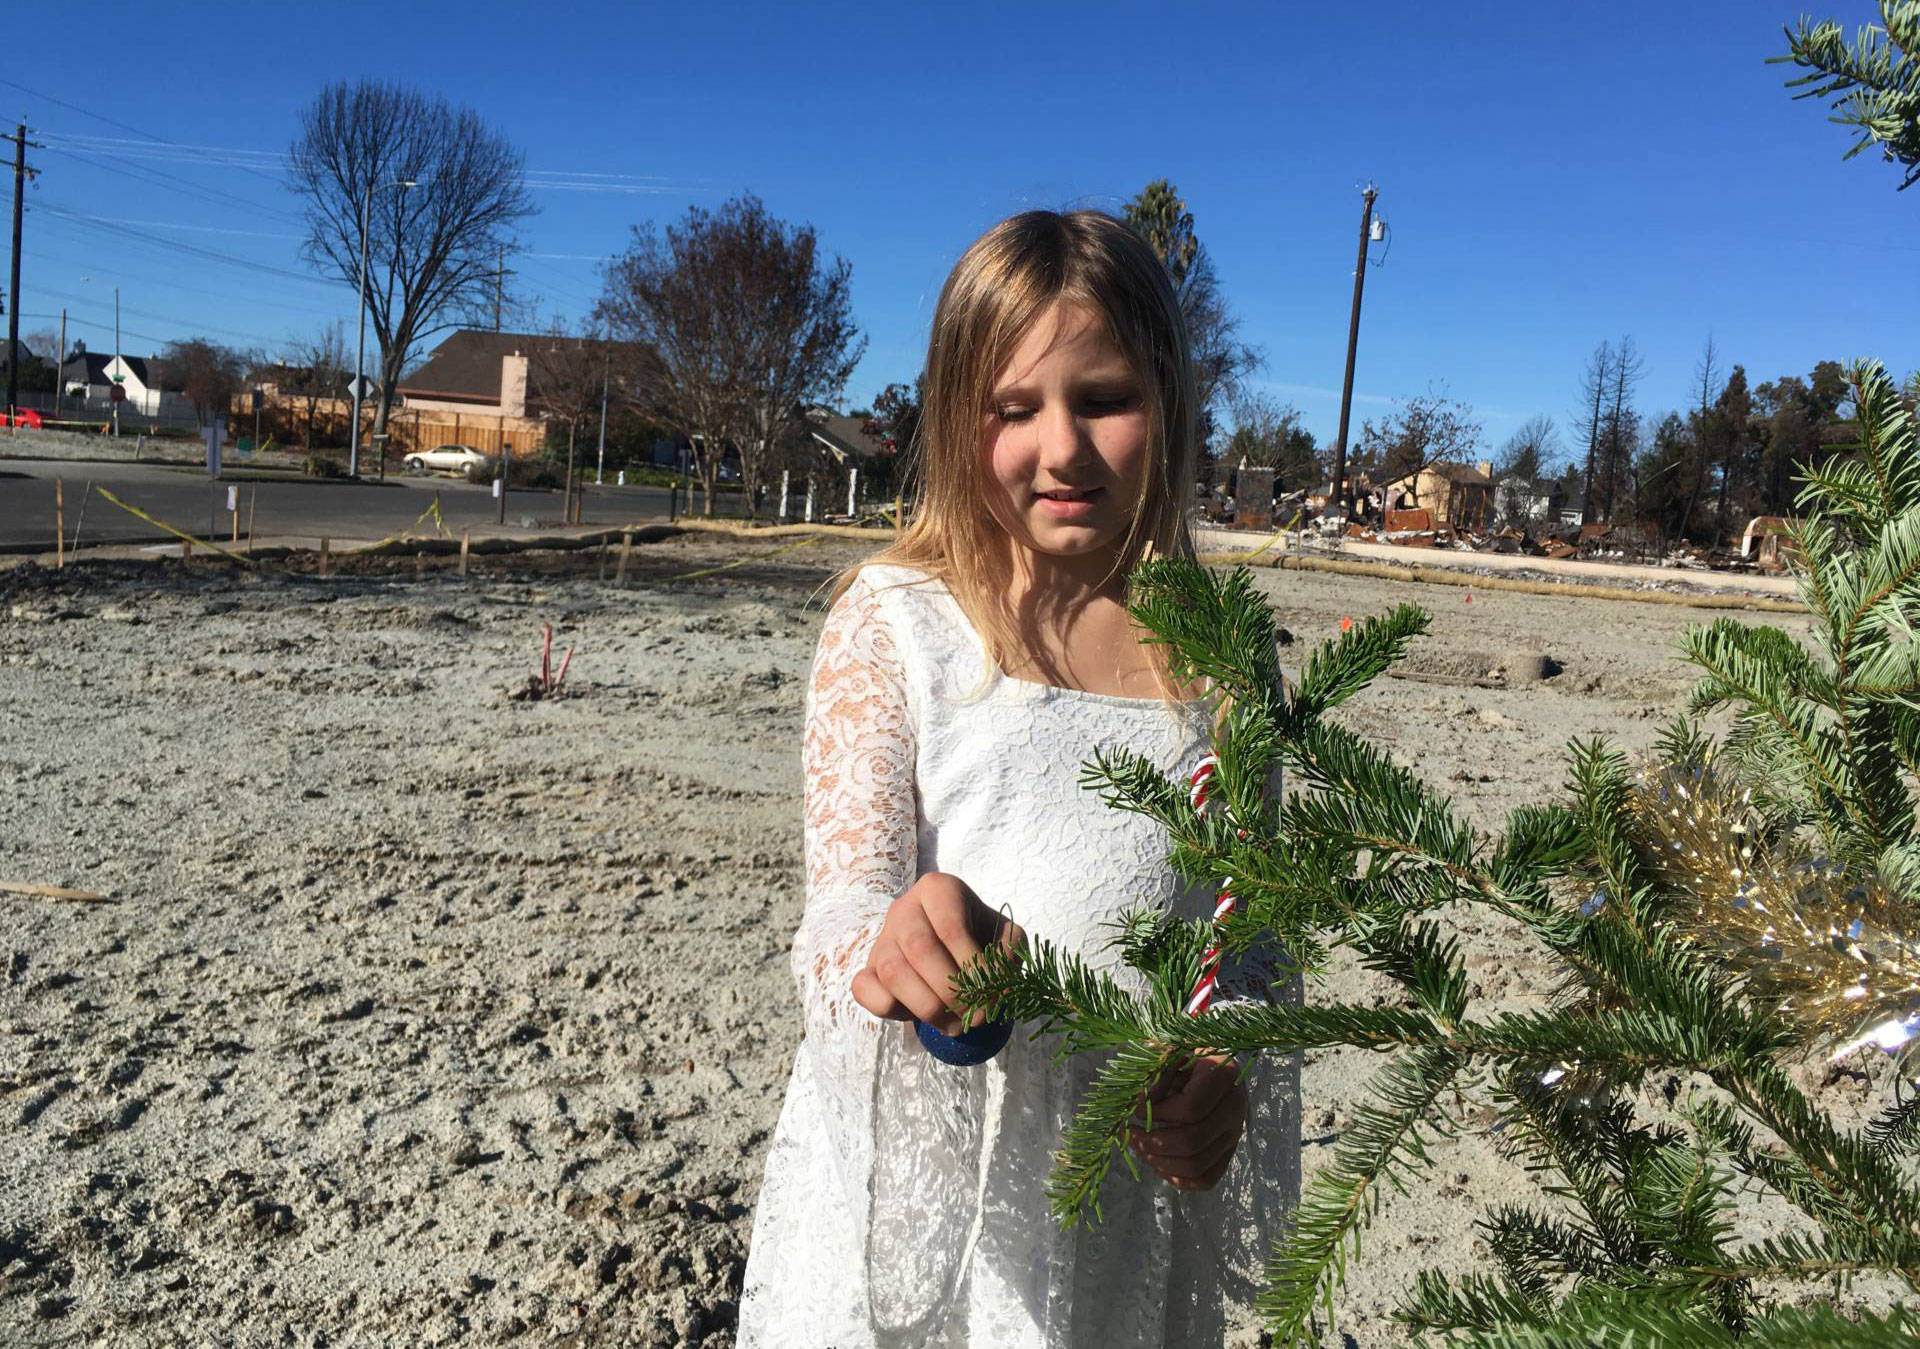 Lilly Pell decorates a Christmas tree where the front door of her house used to be. It was destroyed in the North Bay wildfires. April Dembosky/KQED